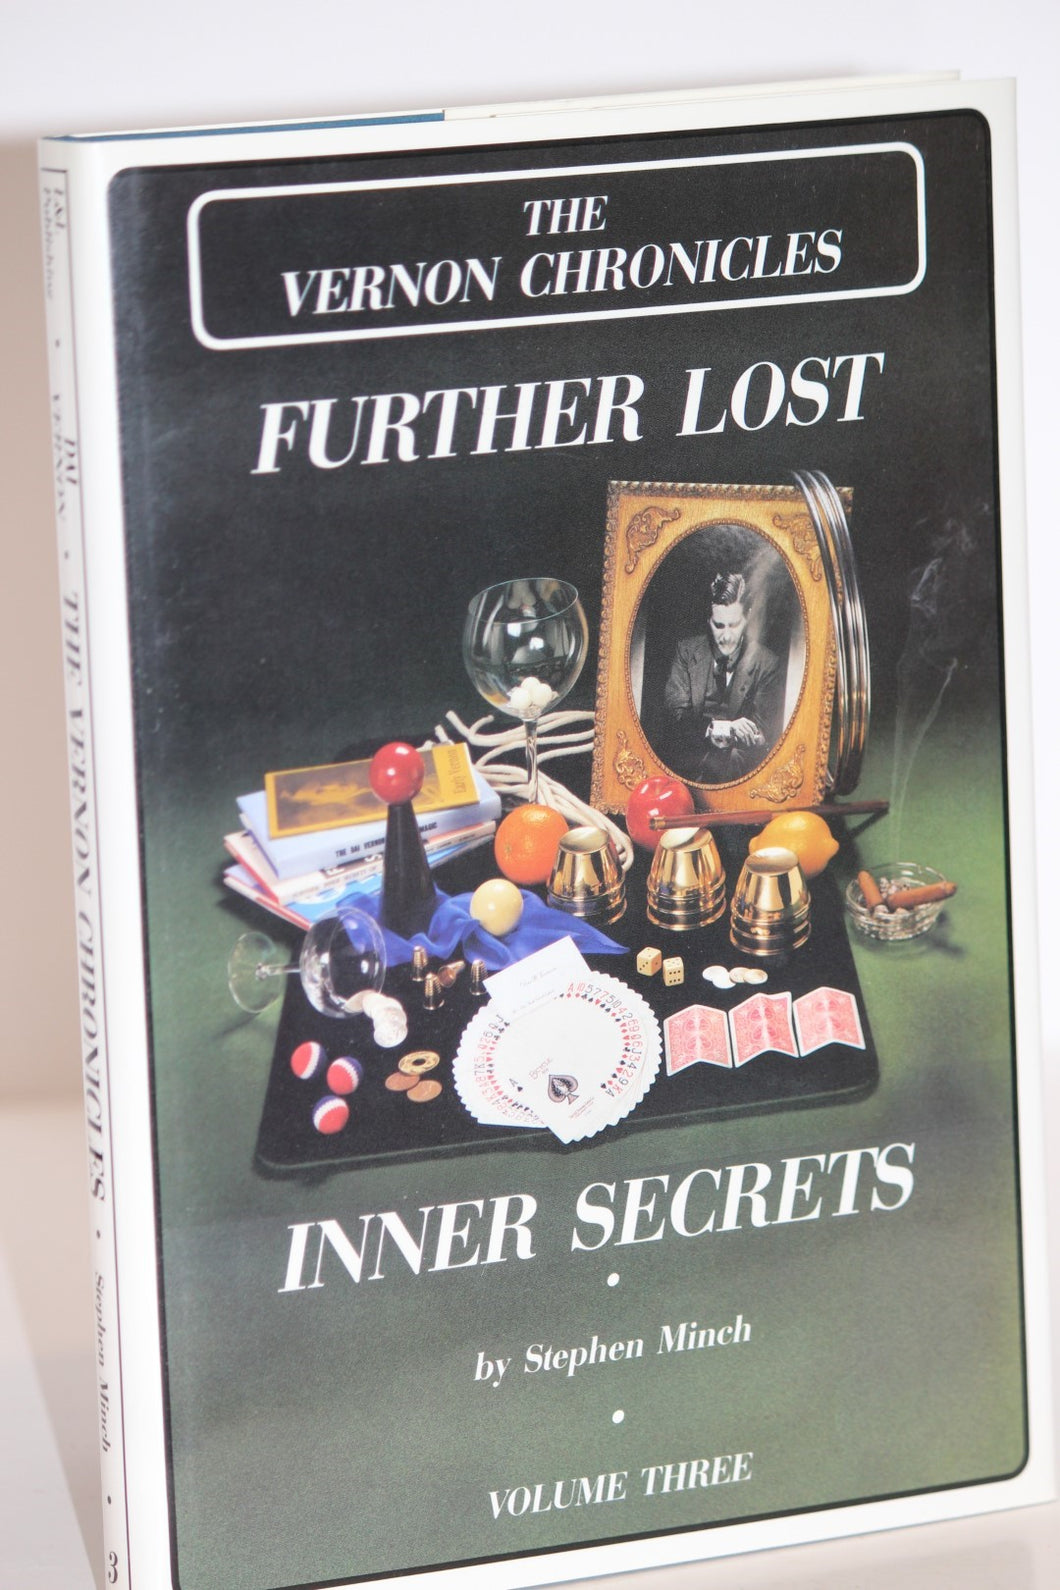 The Vernon Chronicles, Further Lost Inner Secrets Vol. 3  -  Minch